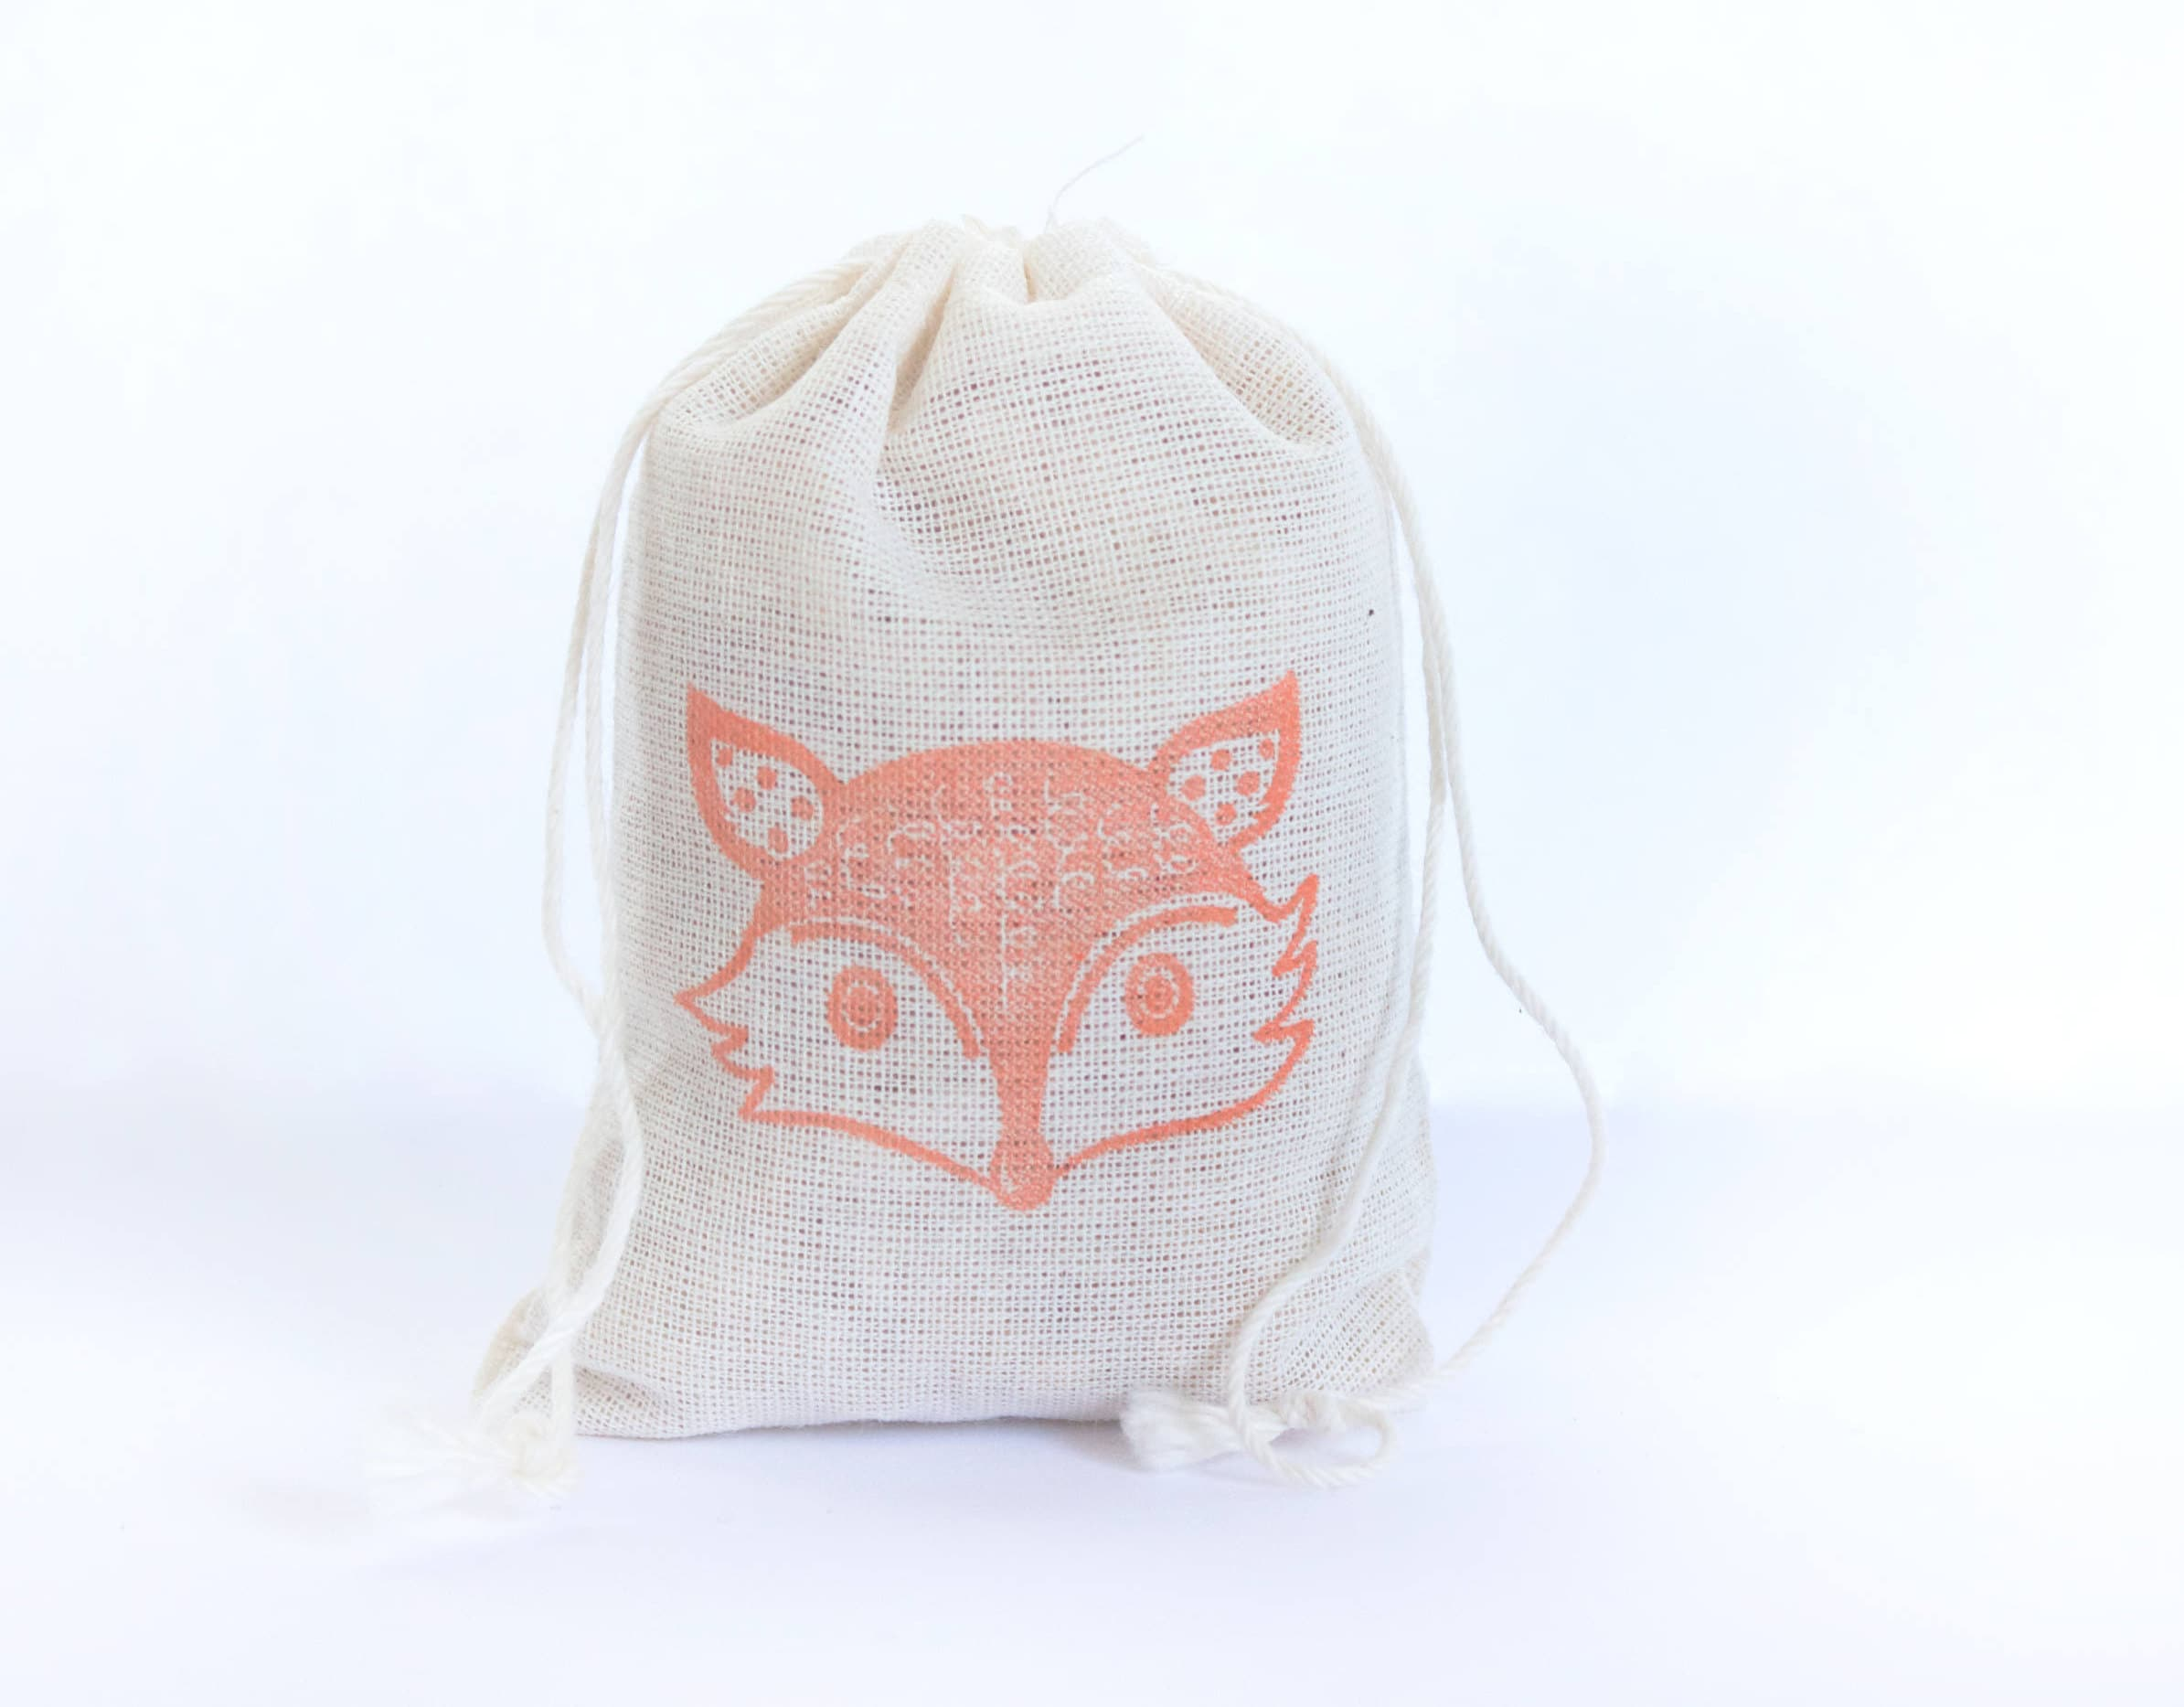 Baby Gift Sack : Fox face bag with stamp gift sack birthday party baby shower